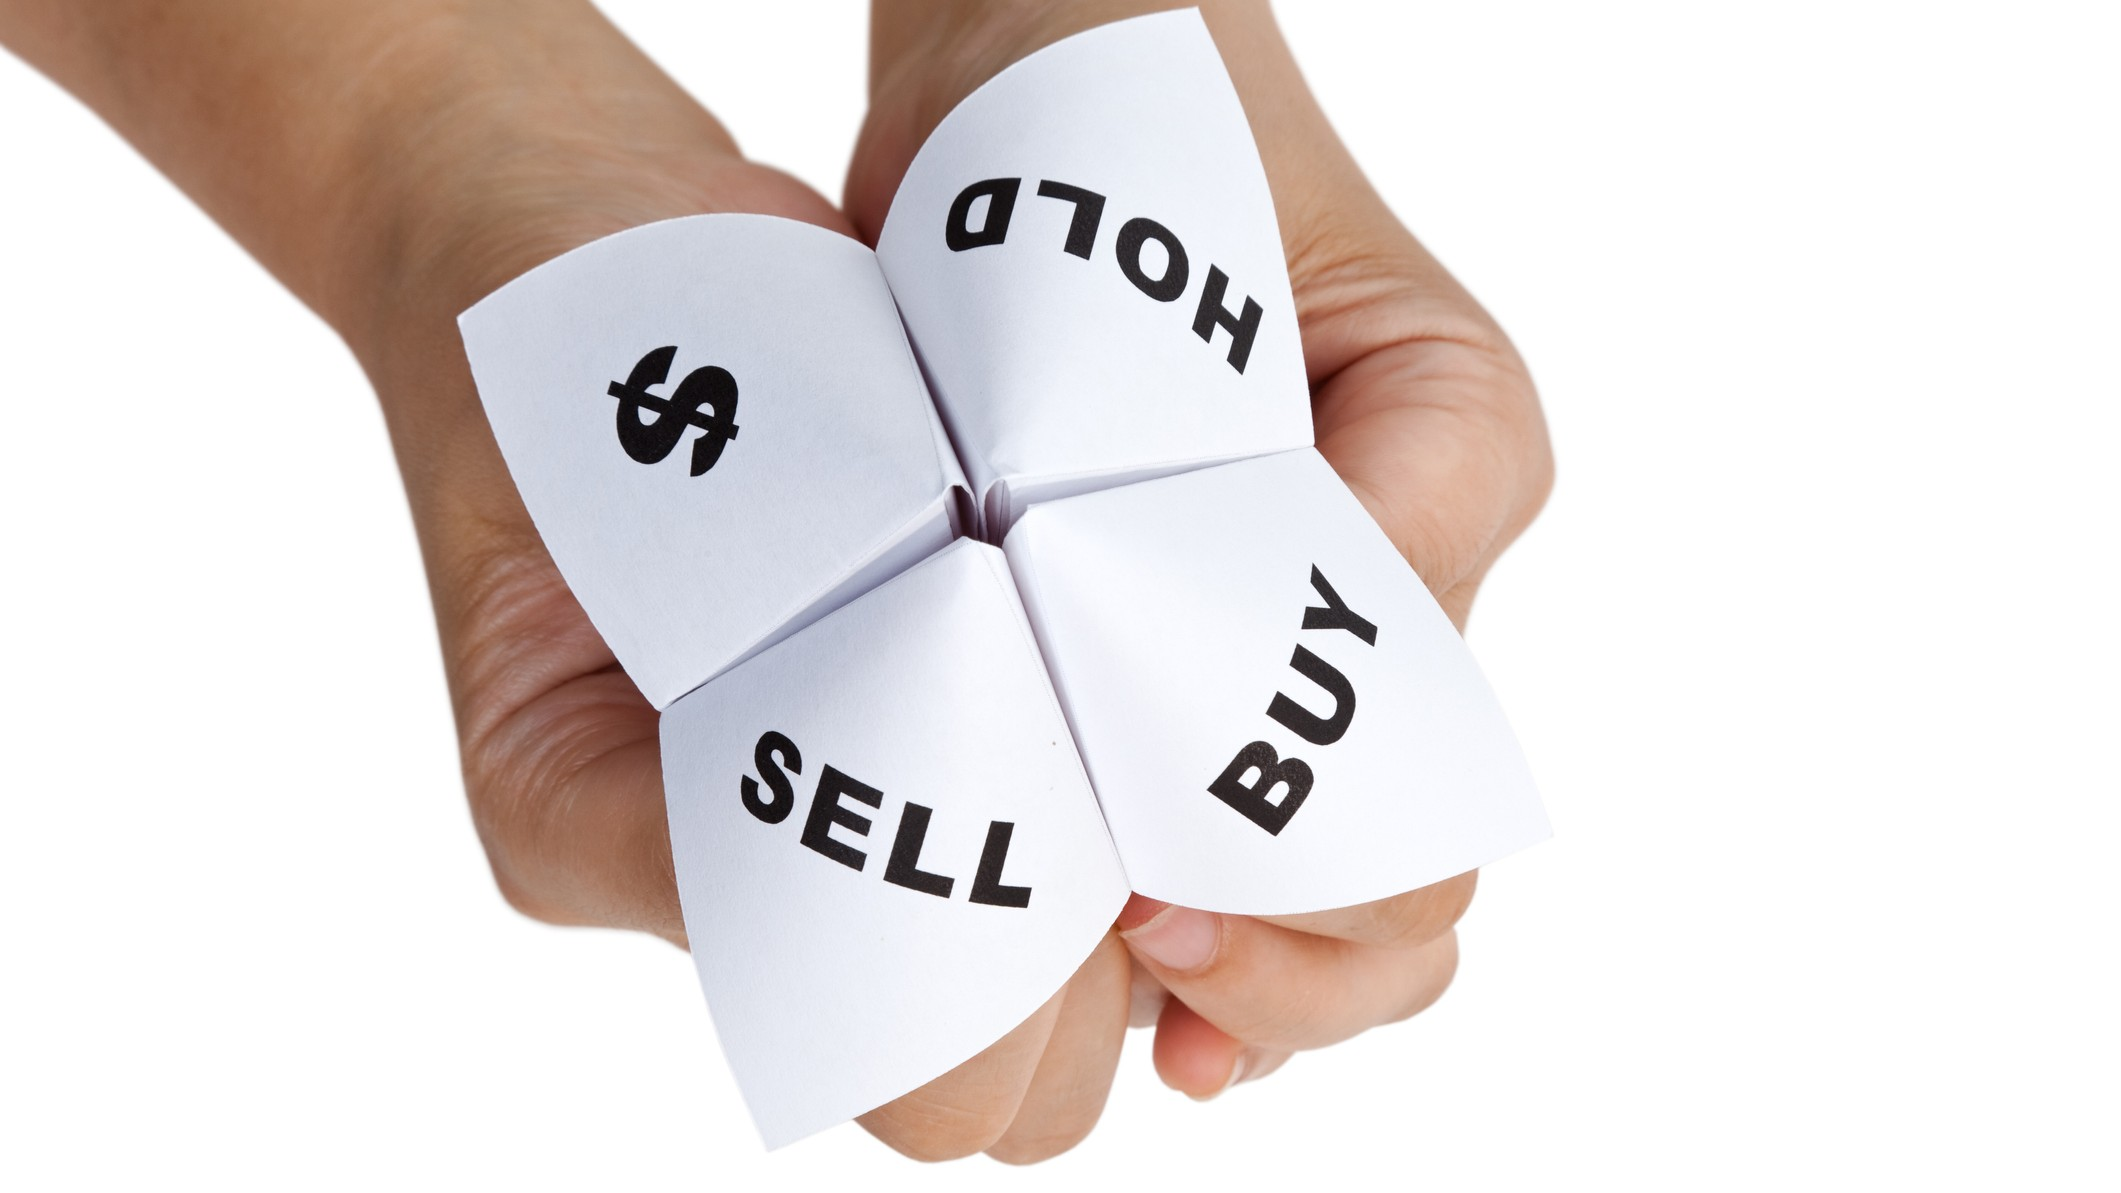 origami paper fortune teller with buy hold sell and dollar sign options